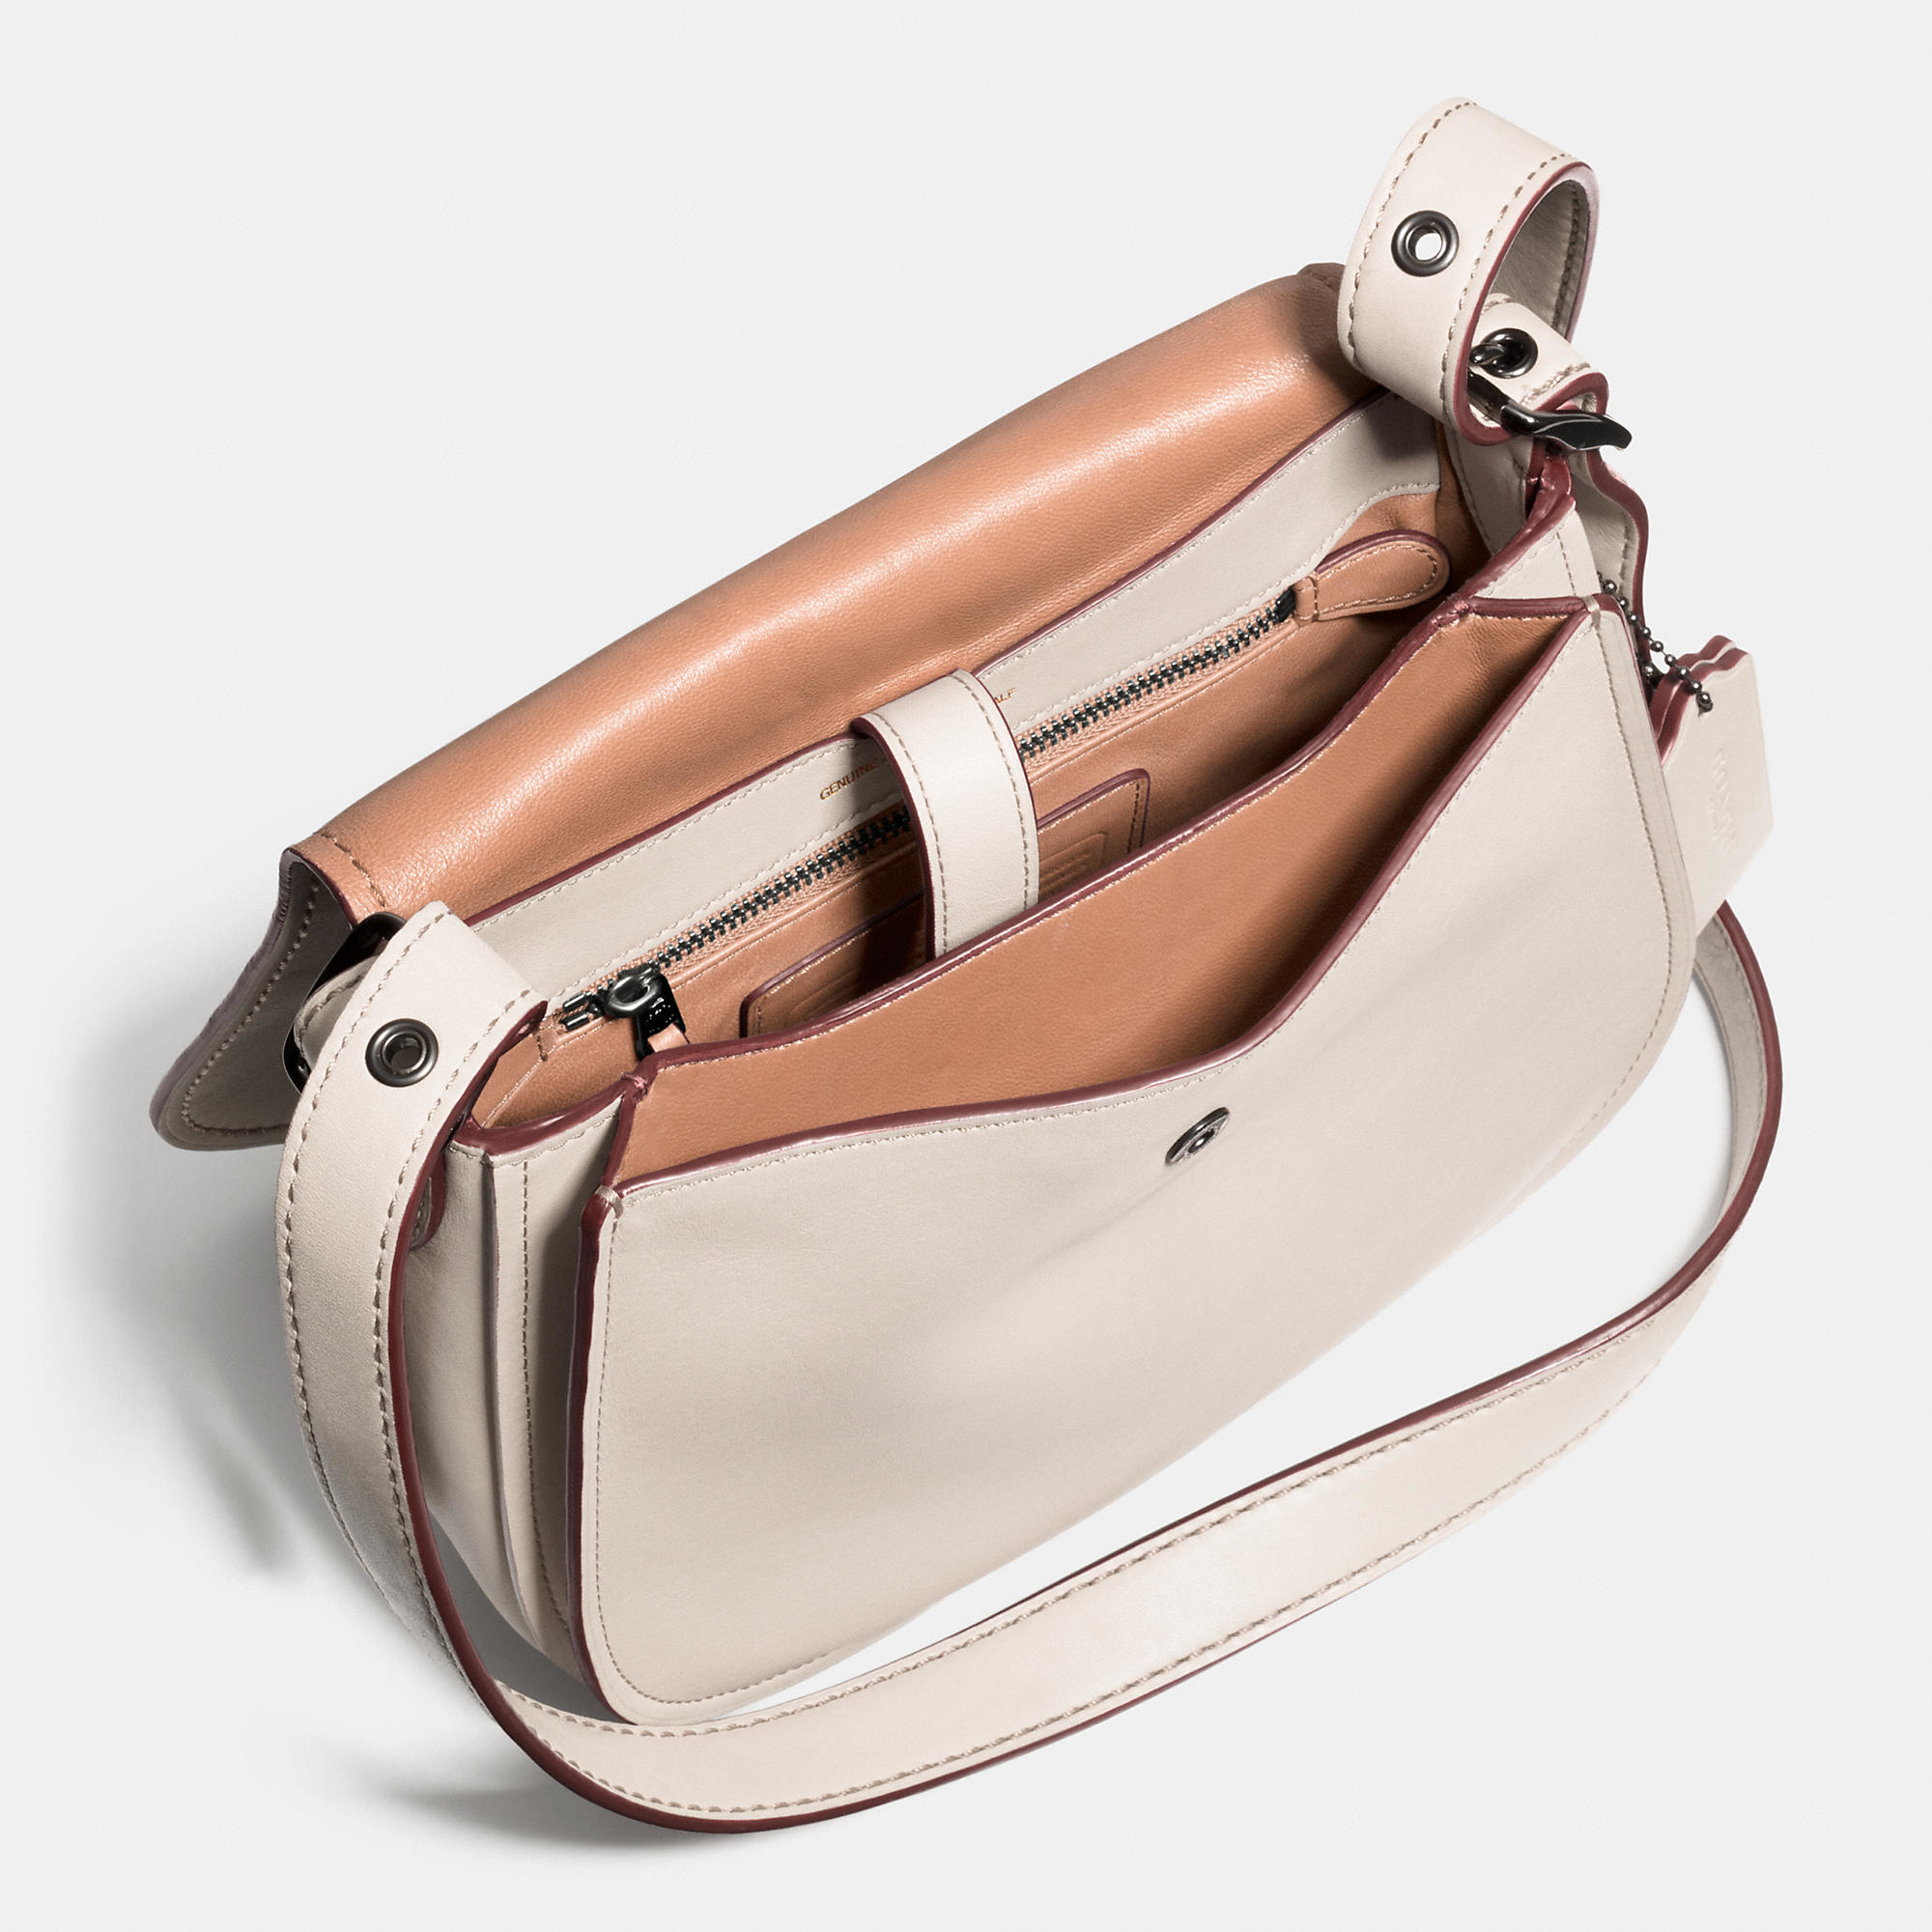 324dabd9e5a ... promo code for coach saddle bag 23 in glovetanned leather lyst b0904  8dc8f